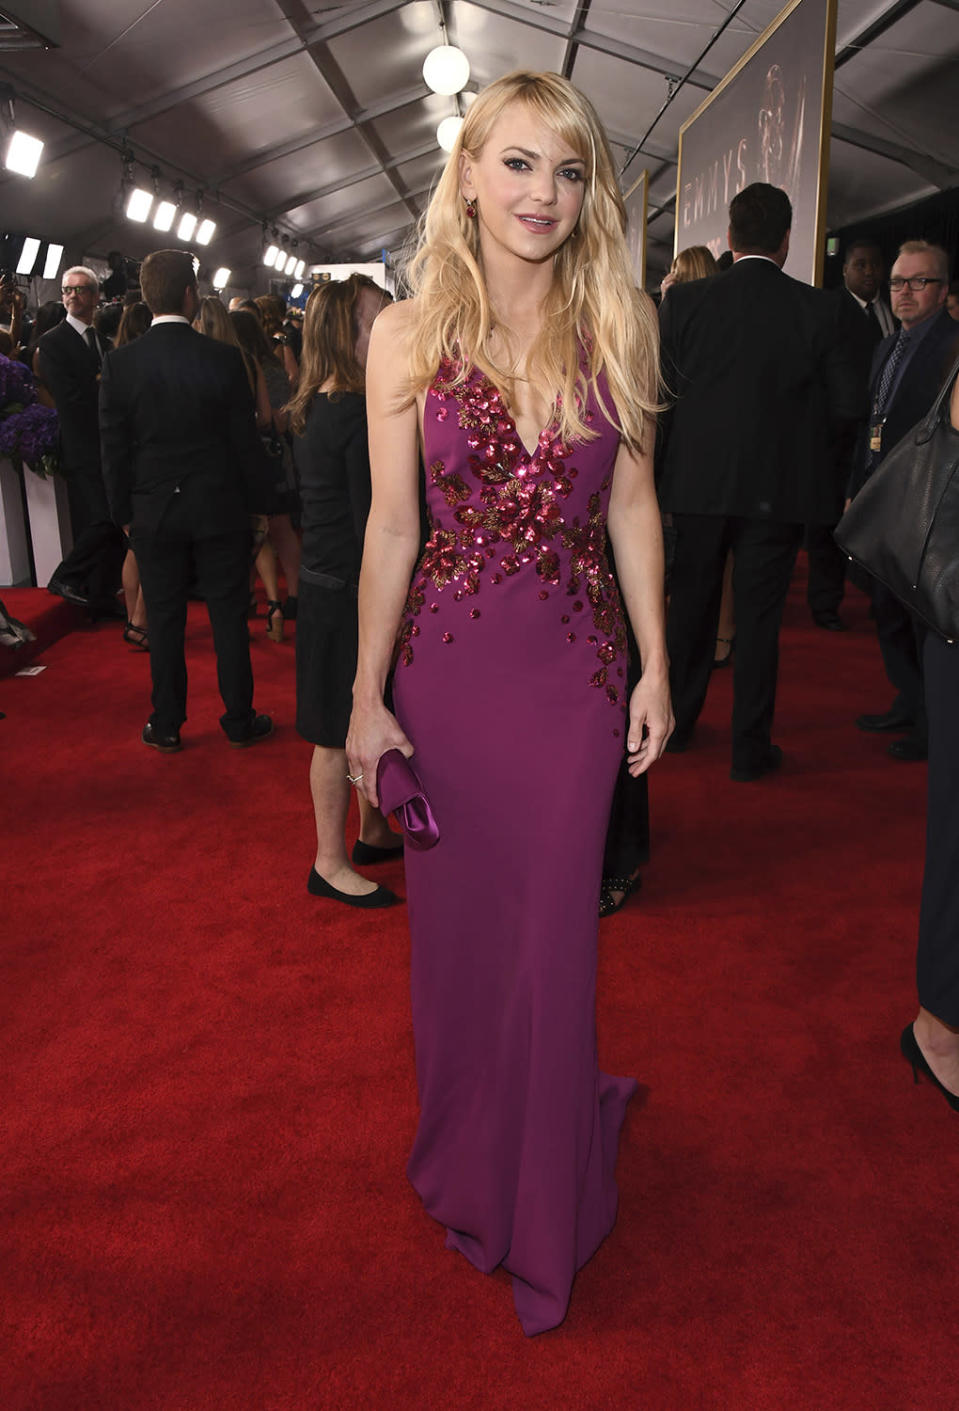 <p>Anna Faris arrives at the 69th Primetime Emmy Awards on Sunday, Sept. 17, 2017, at the Microsoft Theater in Los Angeles. (Photo by Charles Sykes/Invision for the Television Academy/AP Images) </p>